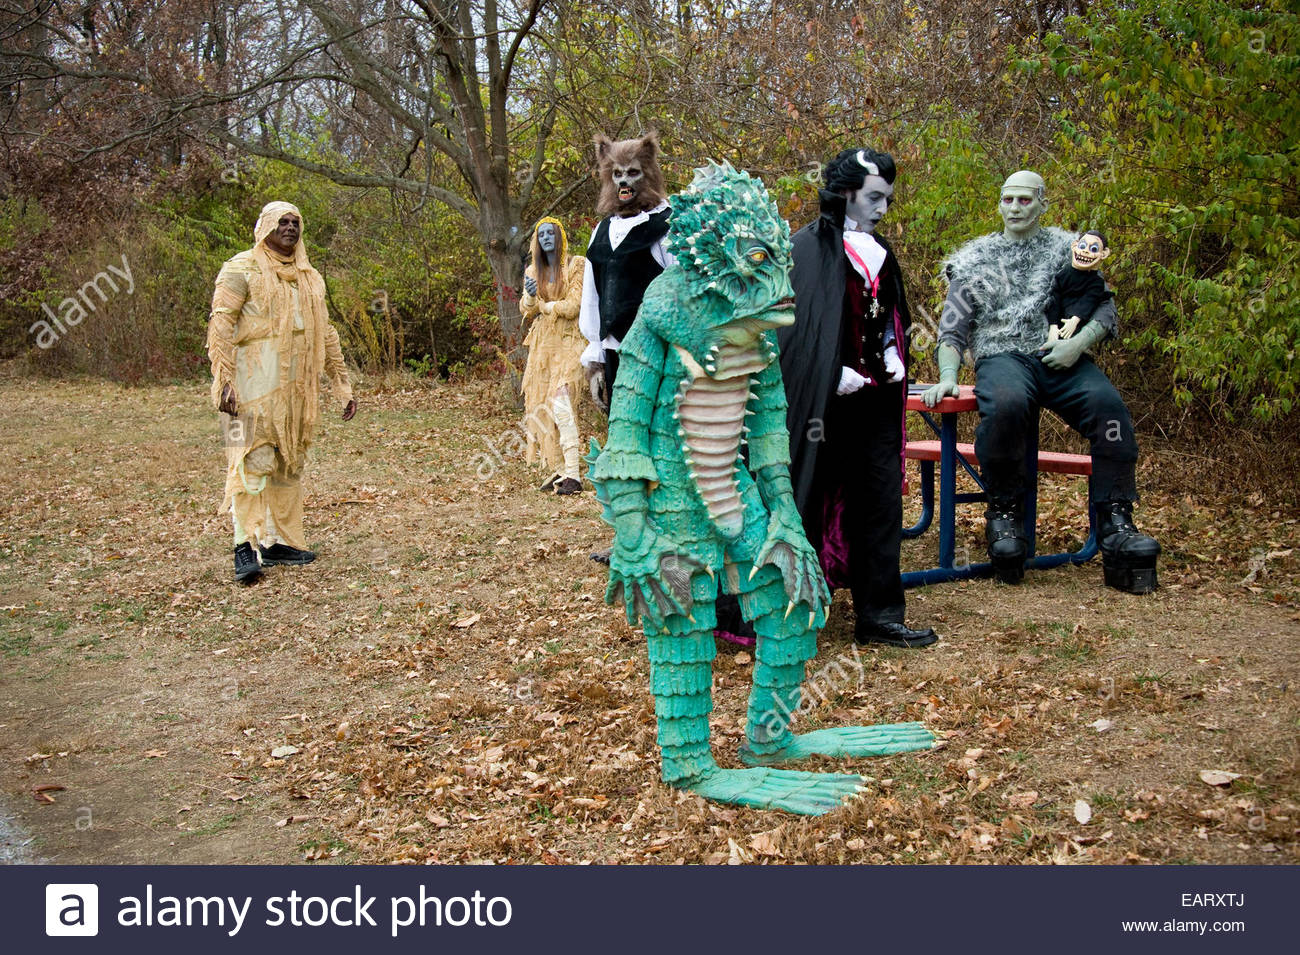 The set of a comedy-horror film. Stock Photo